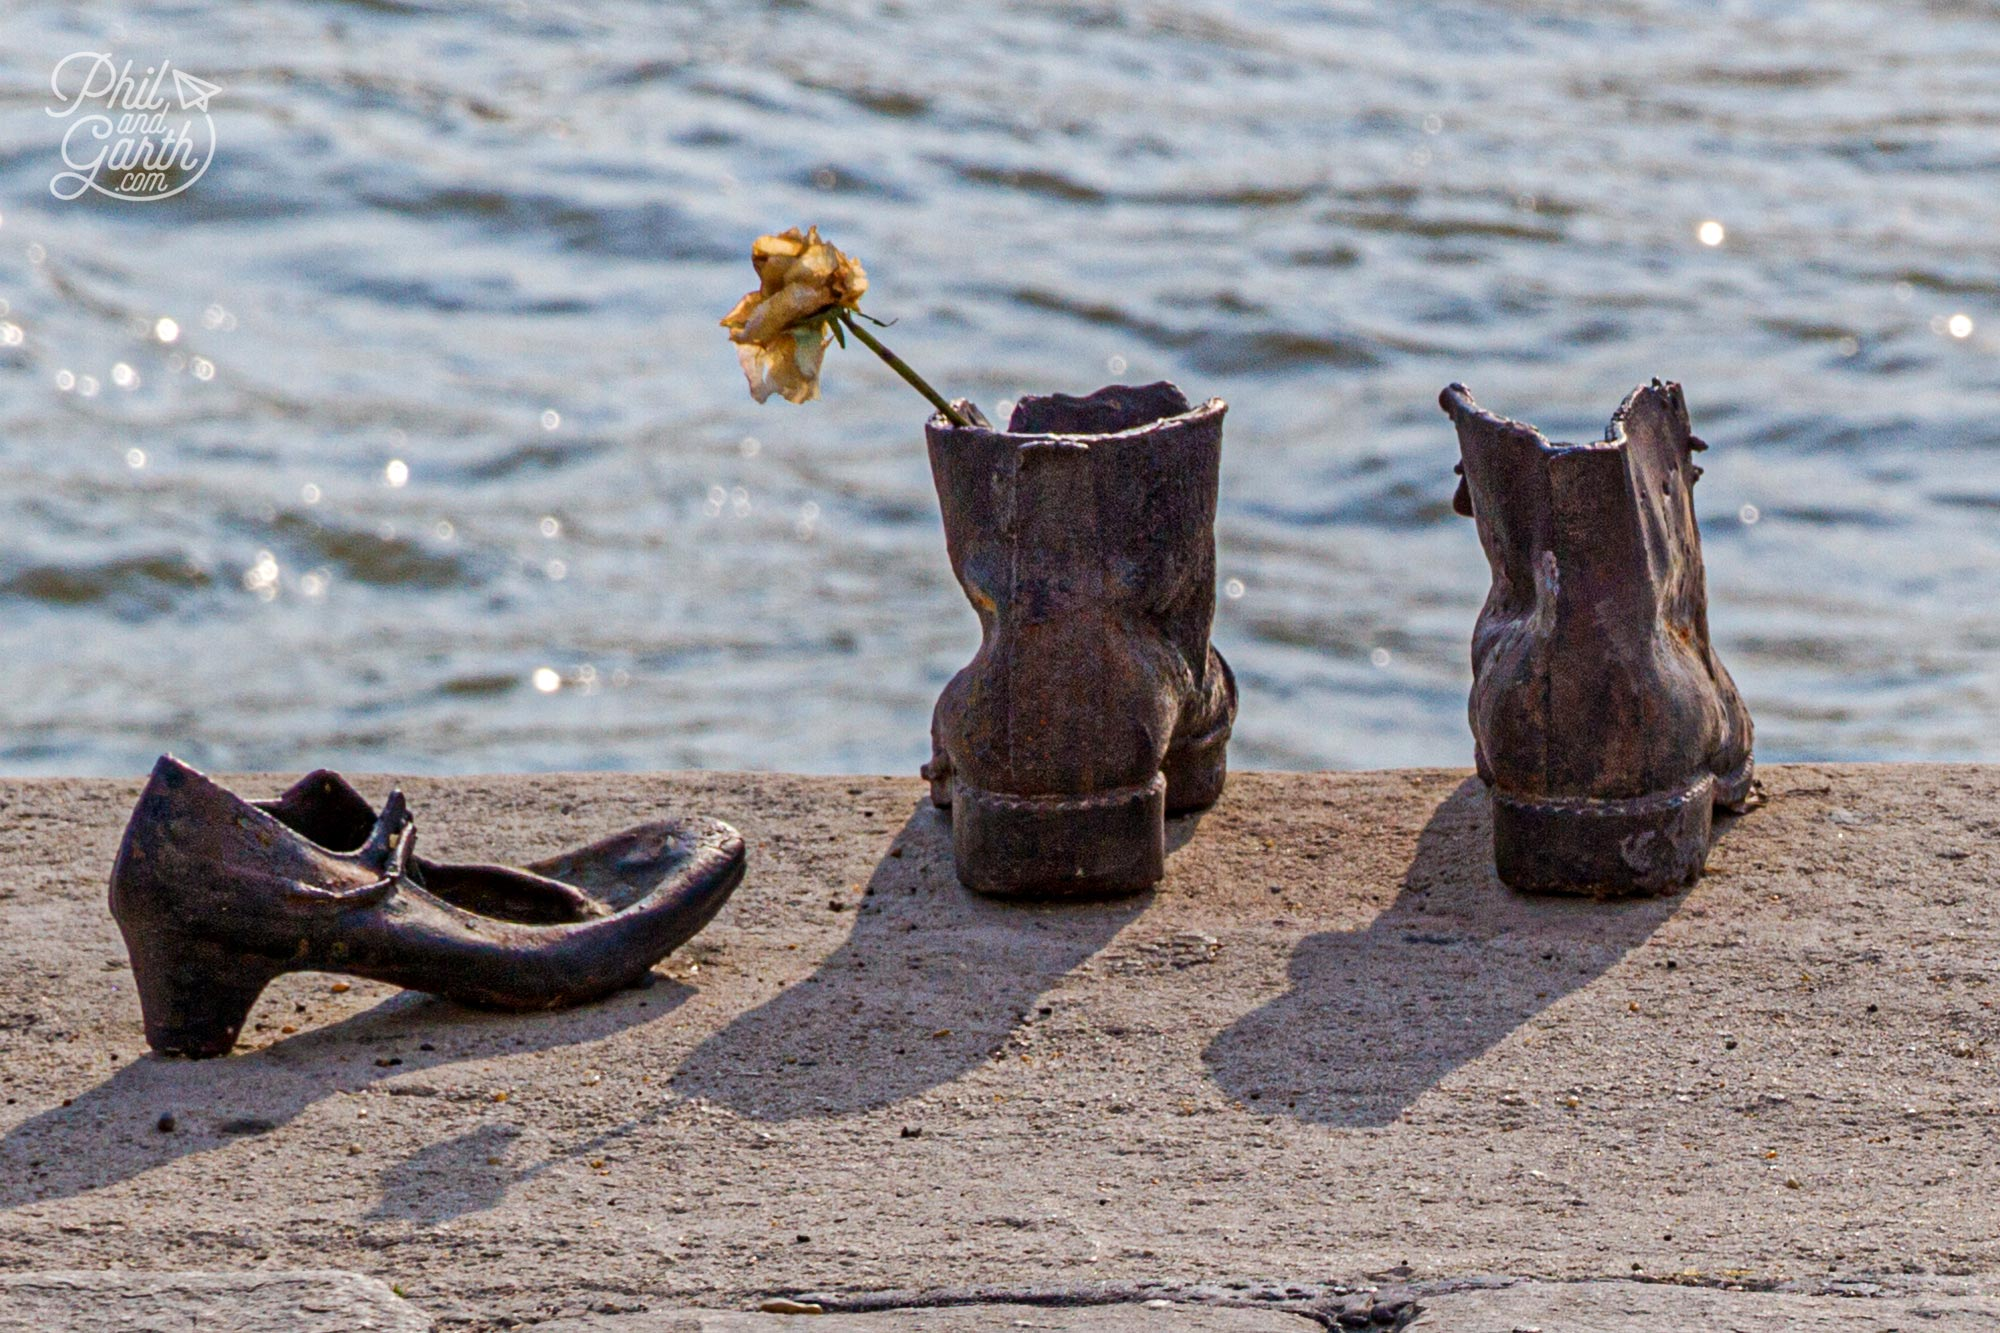 The memorial includes some tiny shoes of a child